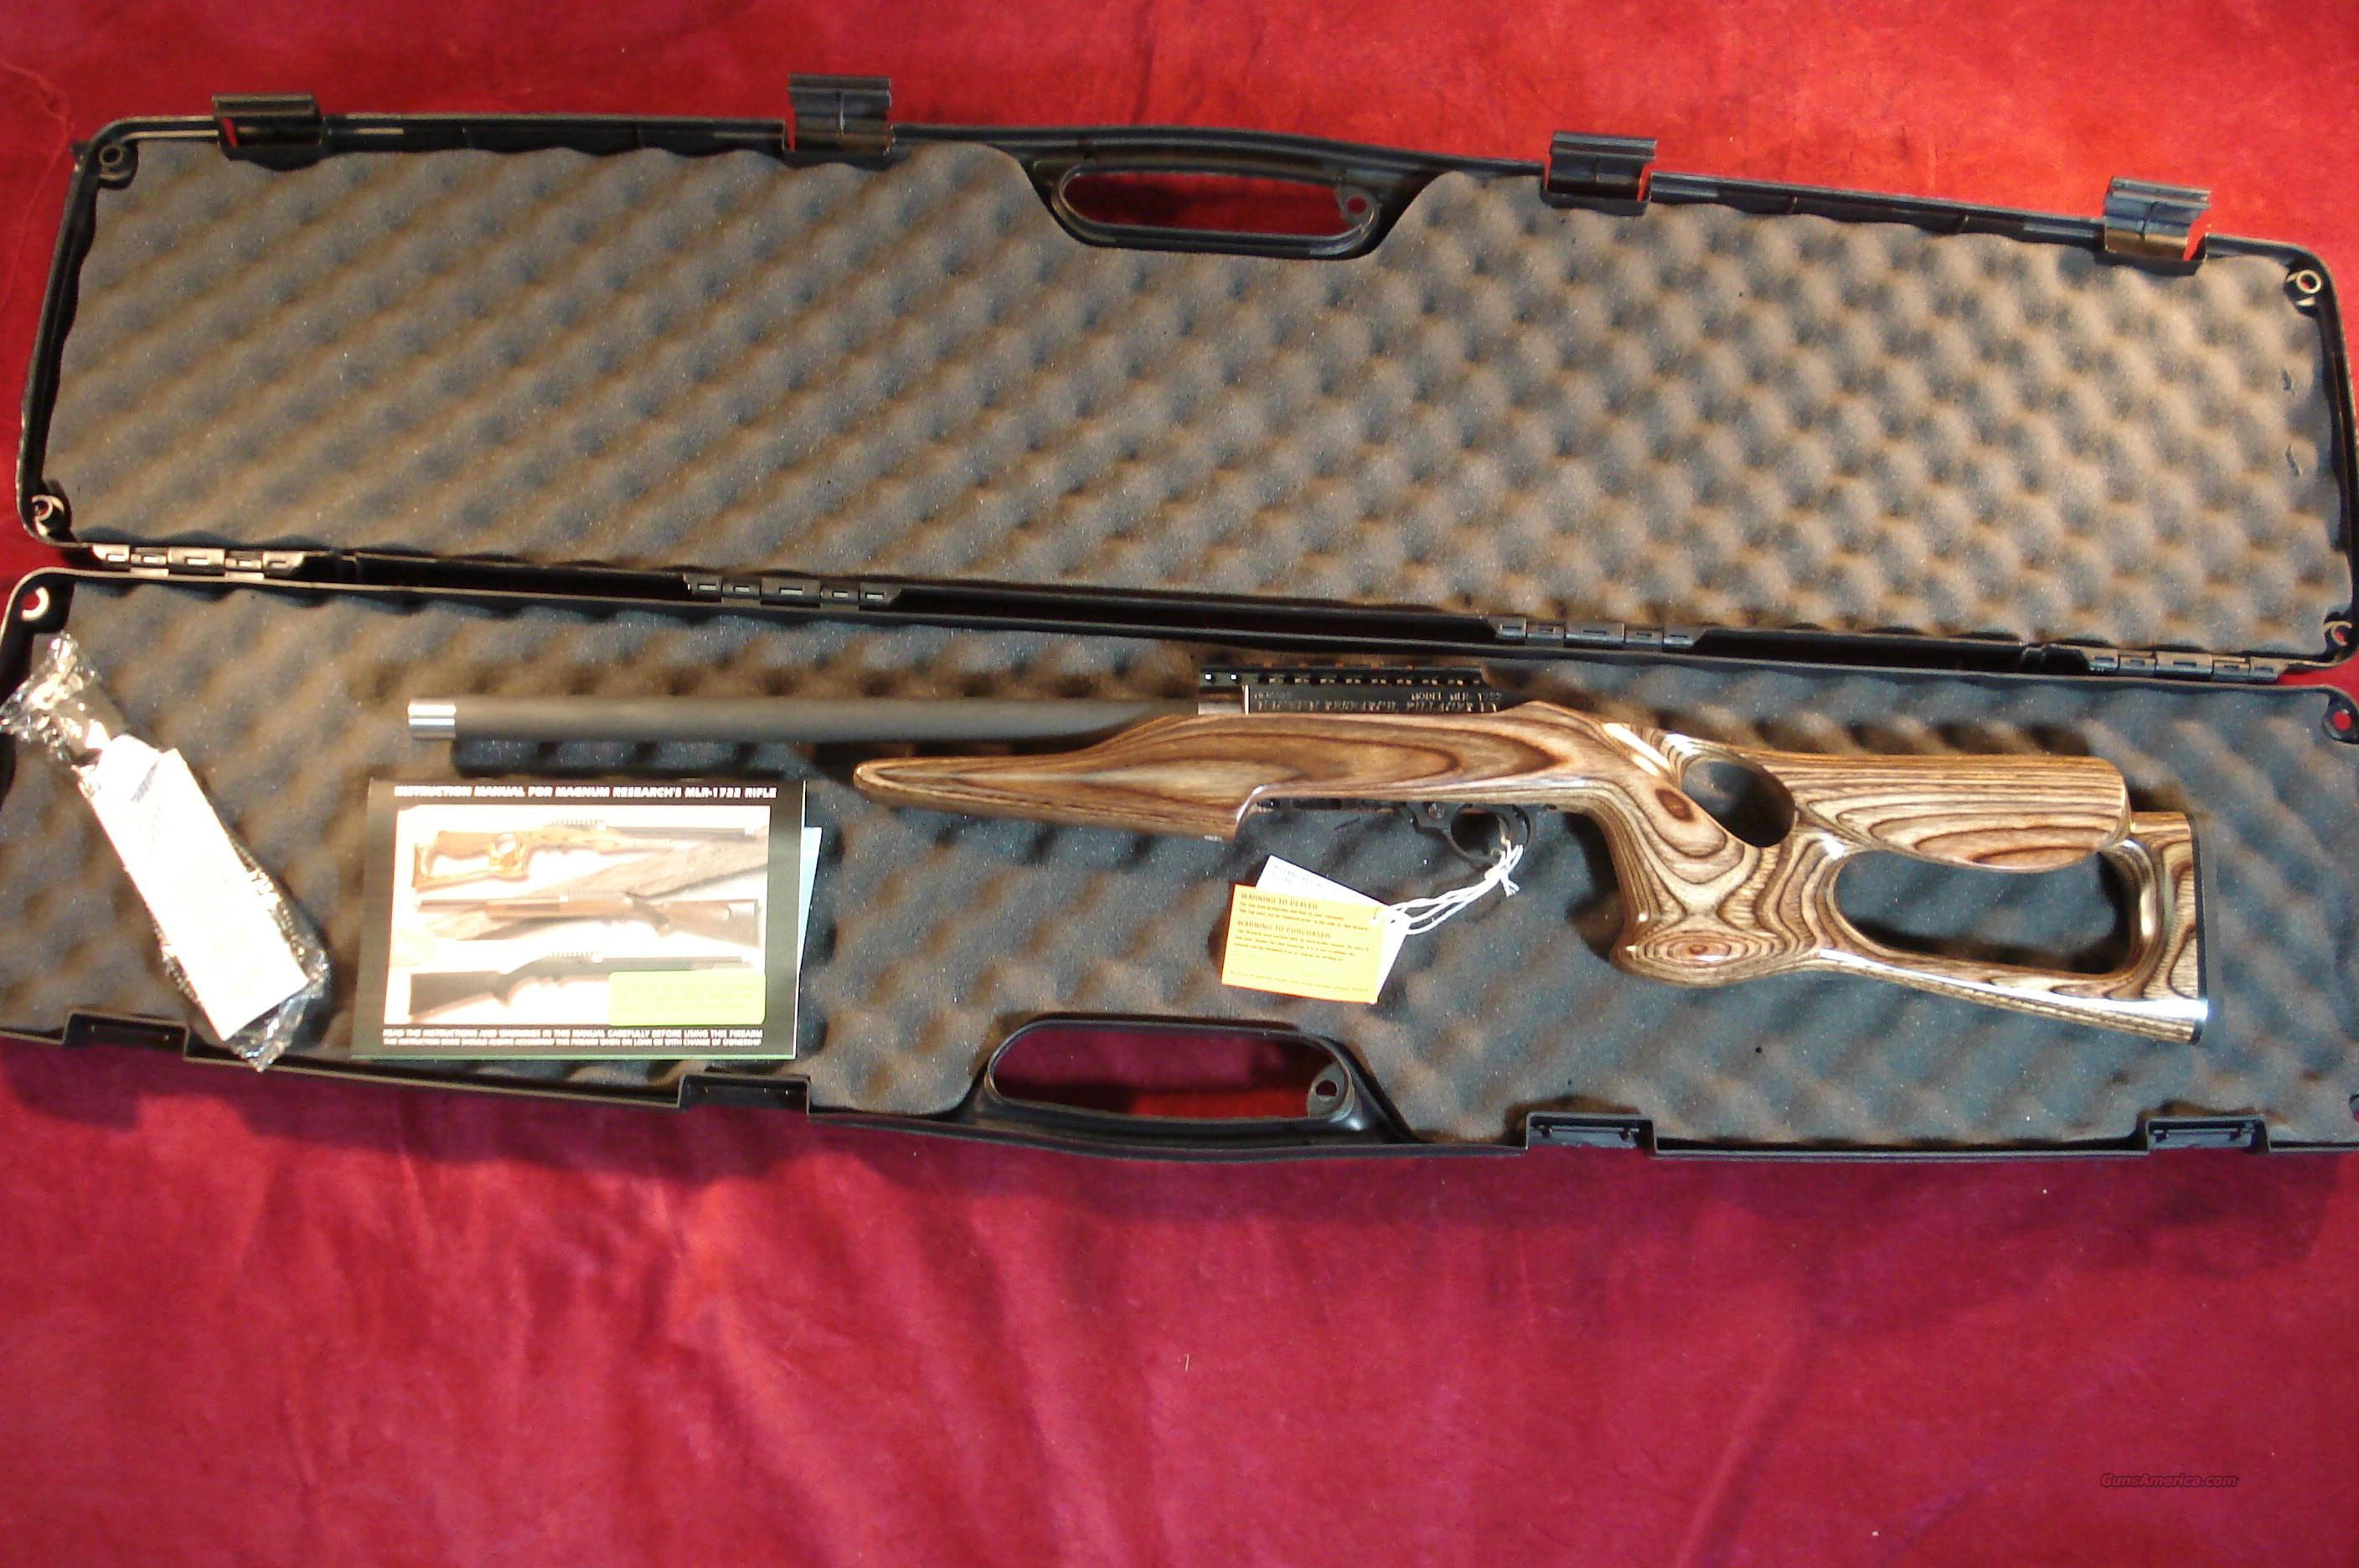 MAGNUM RESEARCH 22LR CAL MAGNUMLITE BARRACUDA NEW  Guns > Rifles > MN Misc Rifles